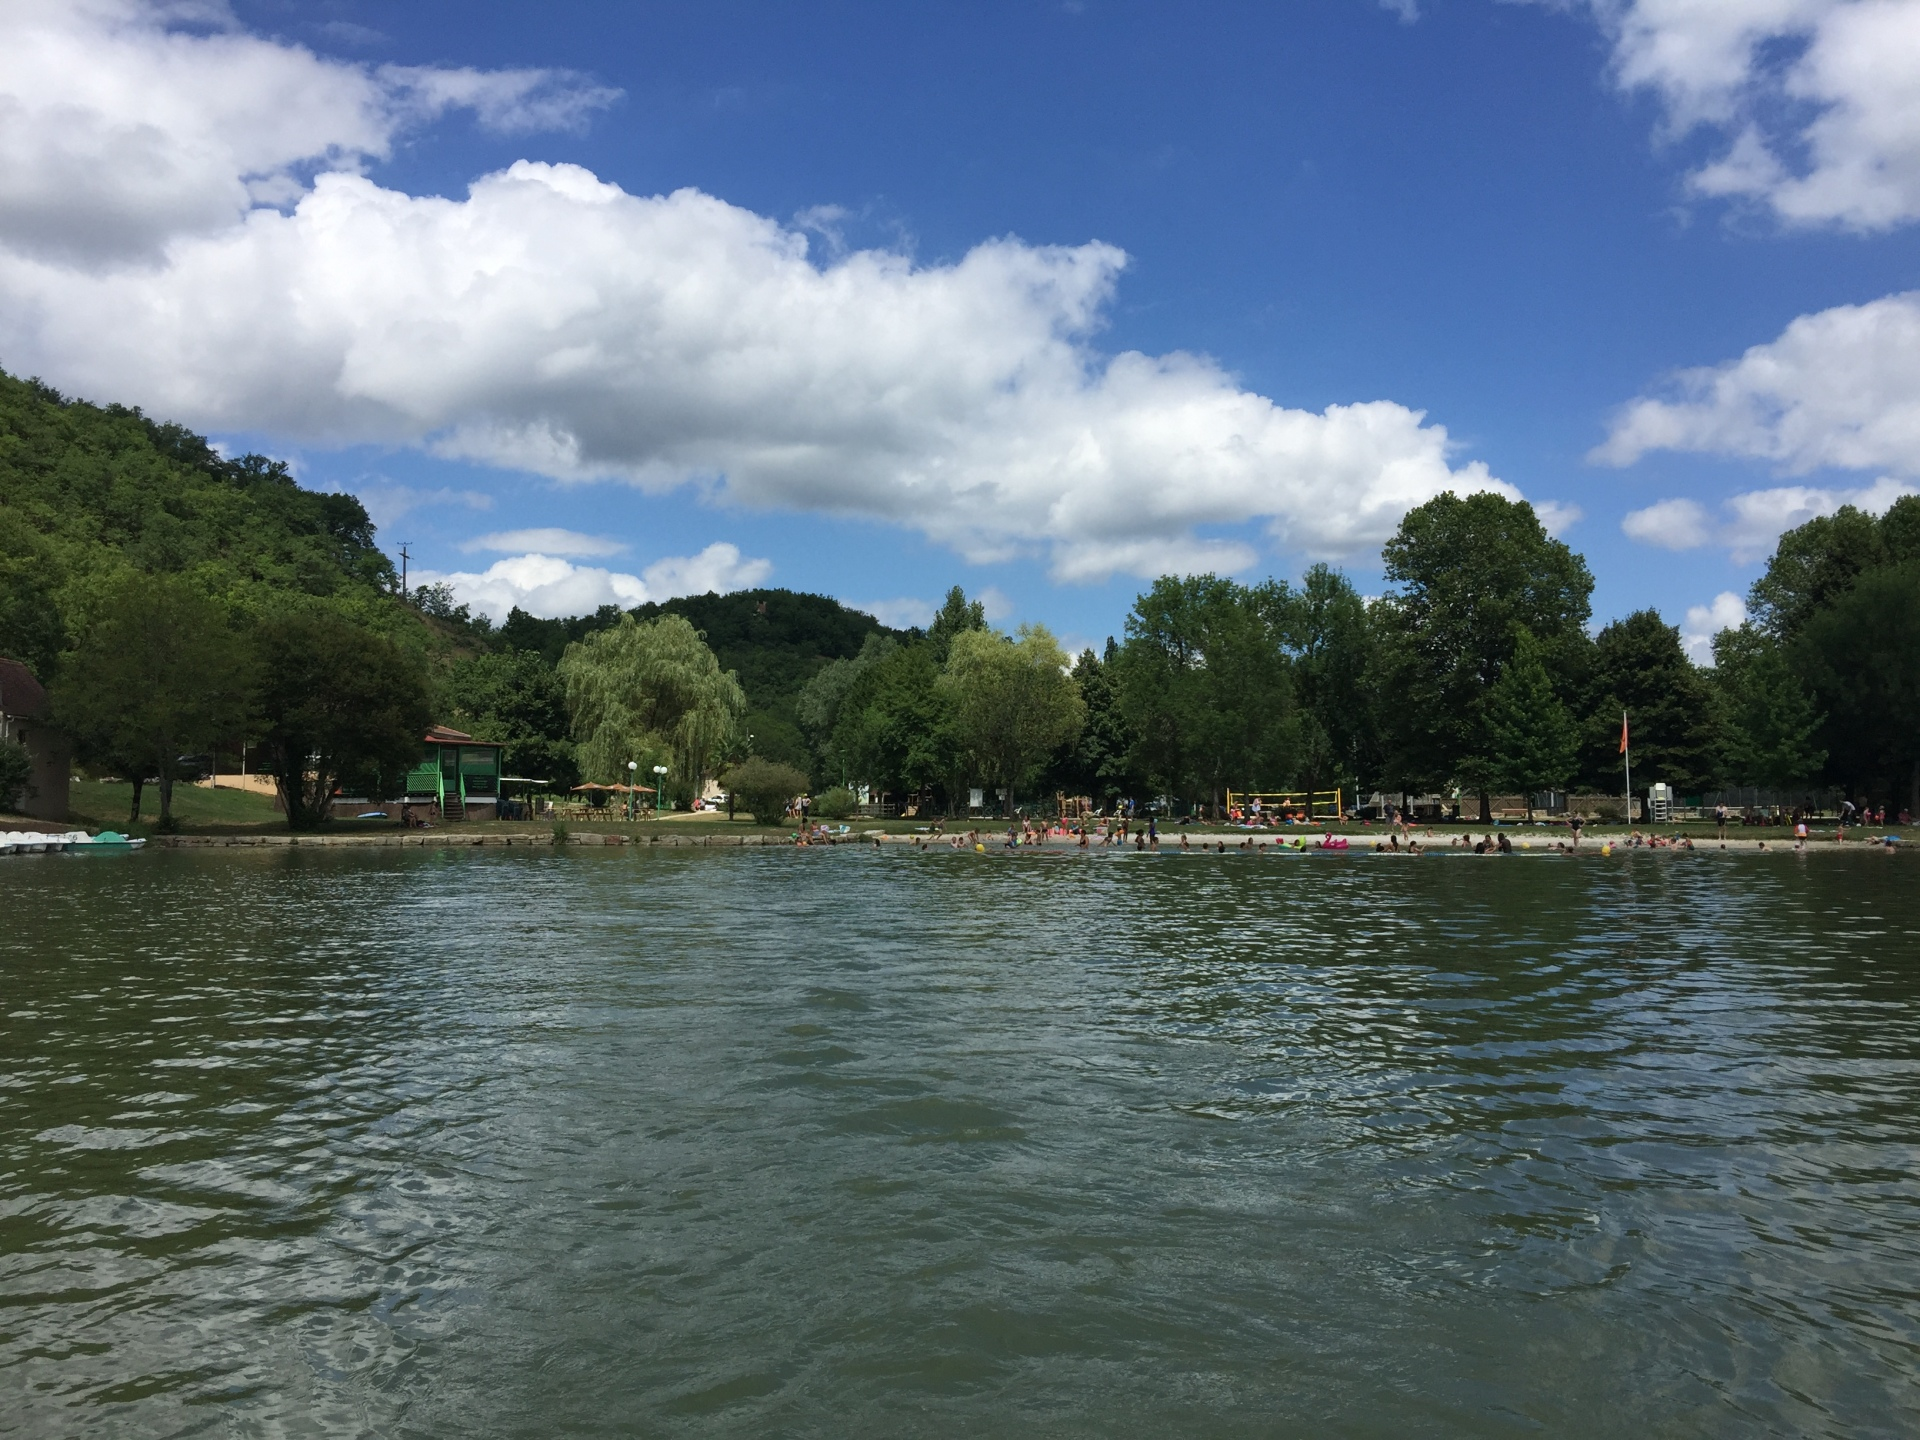 Our nearby Lac Vert at Catus. A lot of fun to be had here on pedalos!